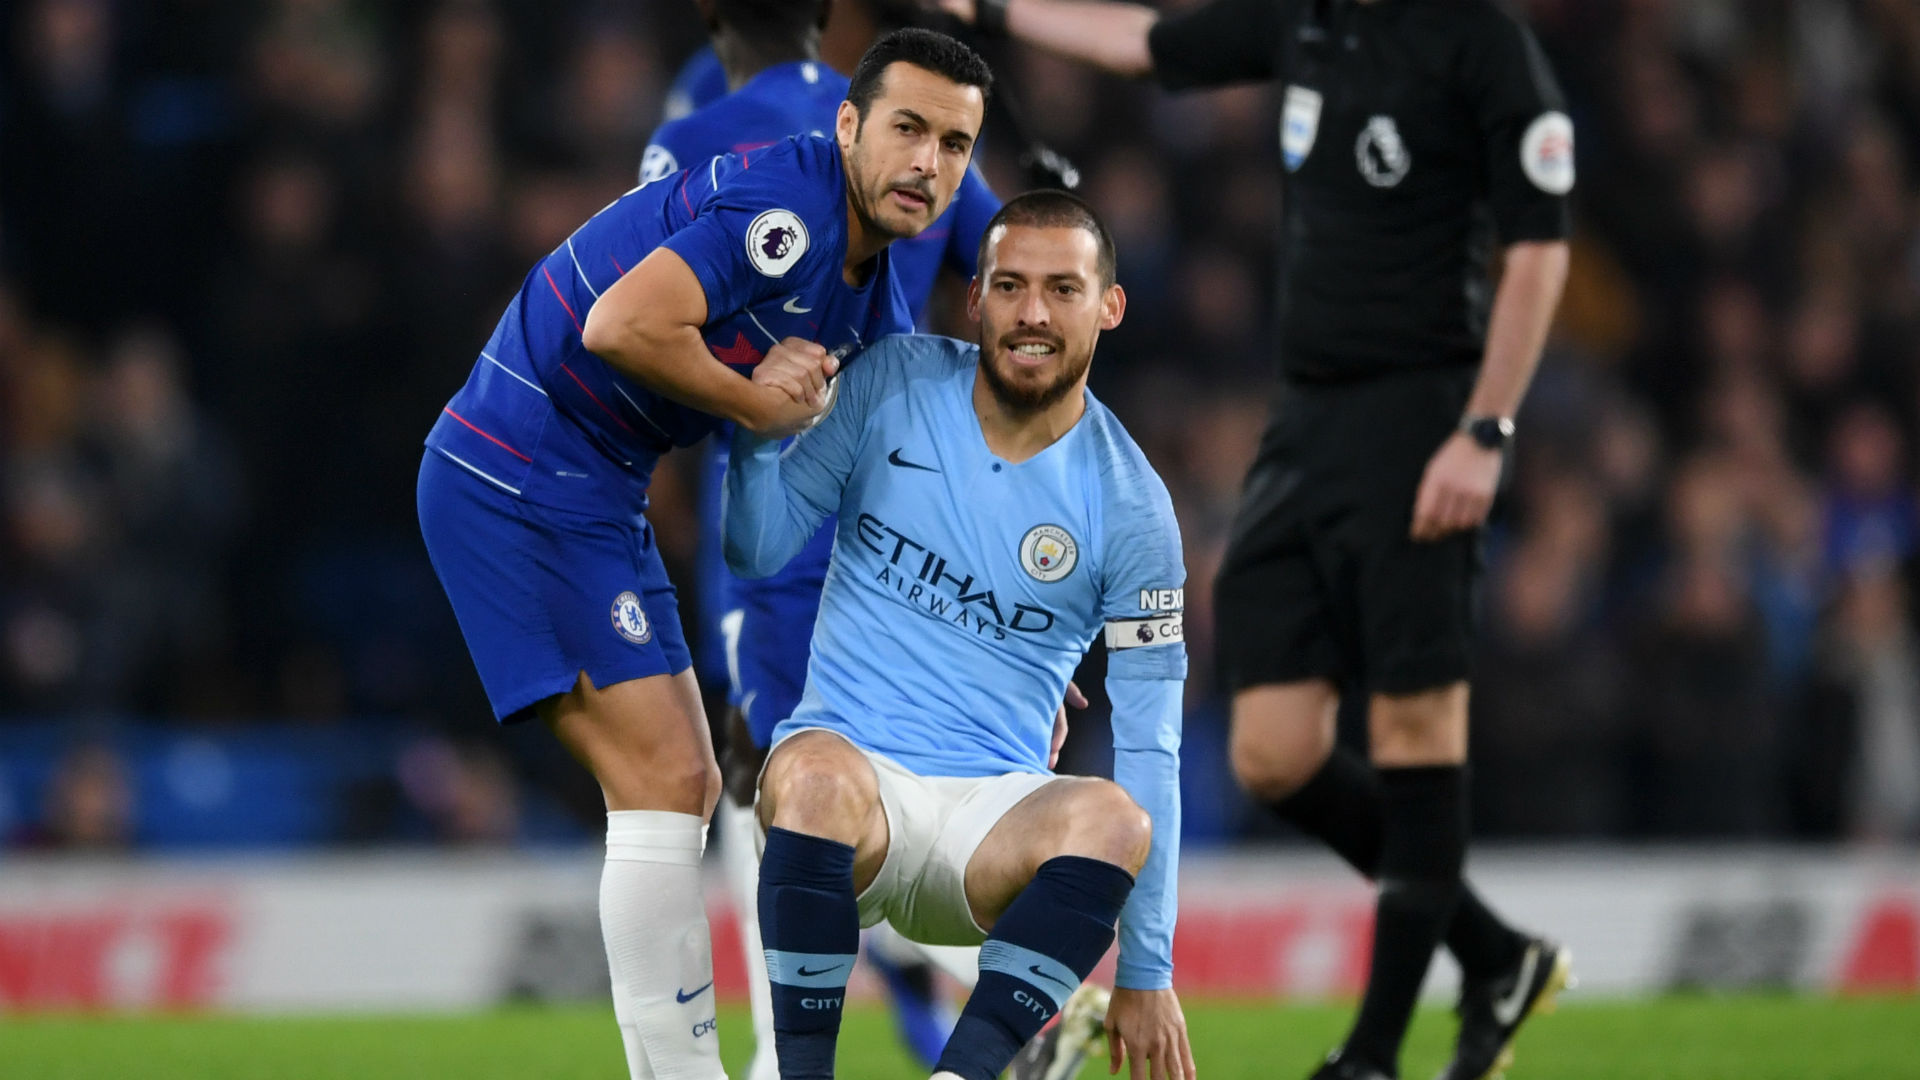 Injured Man City midfielder Silva out for 'a few weeks'